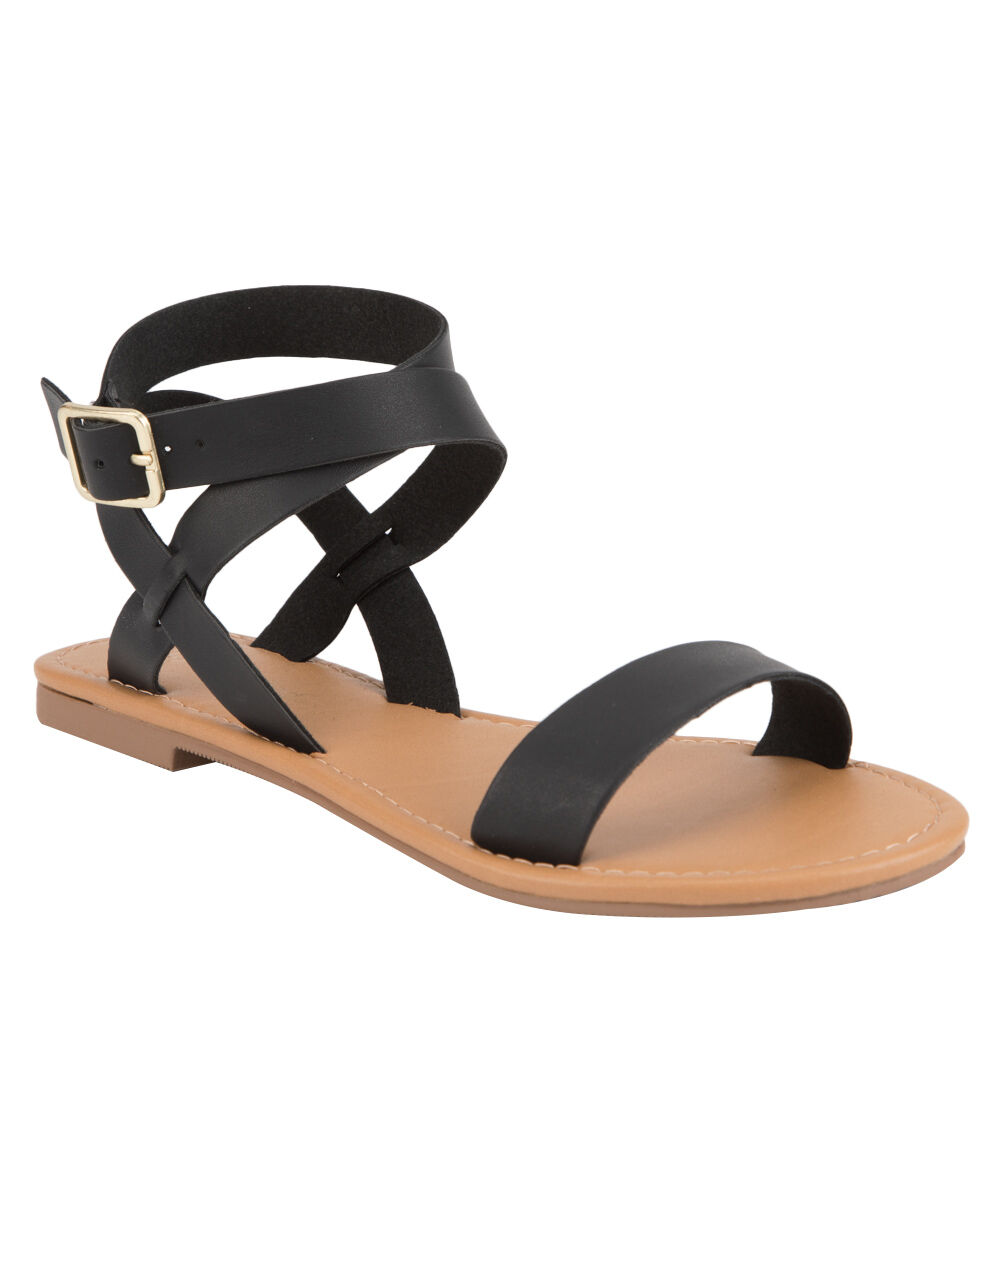 Image of CITY CLASSIFIED BASIC ANKLE WRAP SANDAL